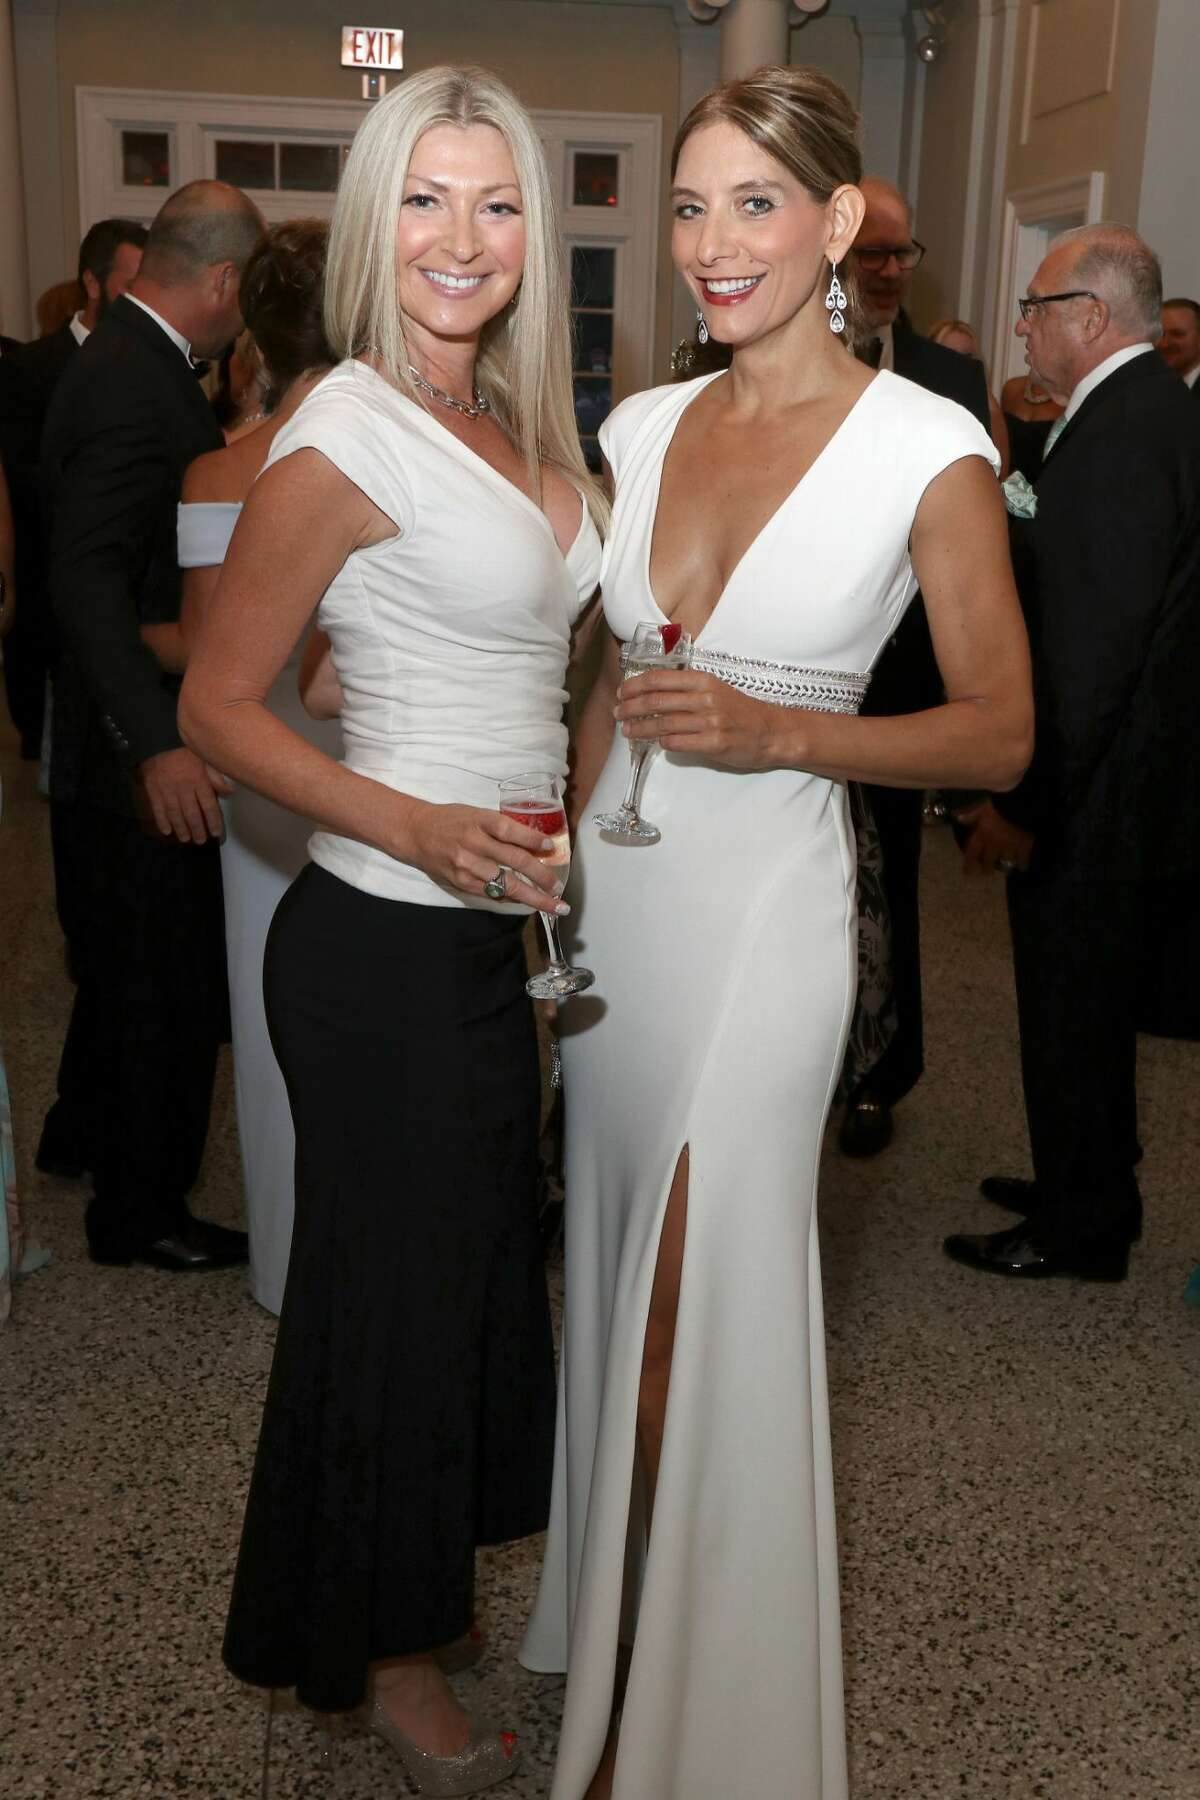 Were you Seen at the National Museum of Dance Gala in Saratoga Springs on Saturday, Aug. 11, 2018?